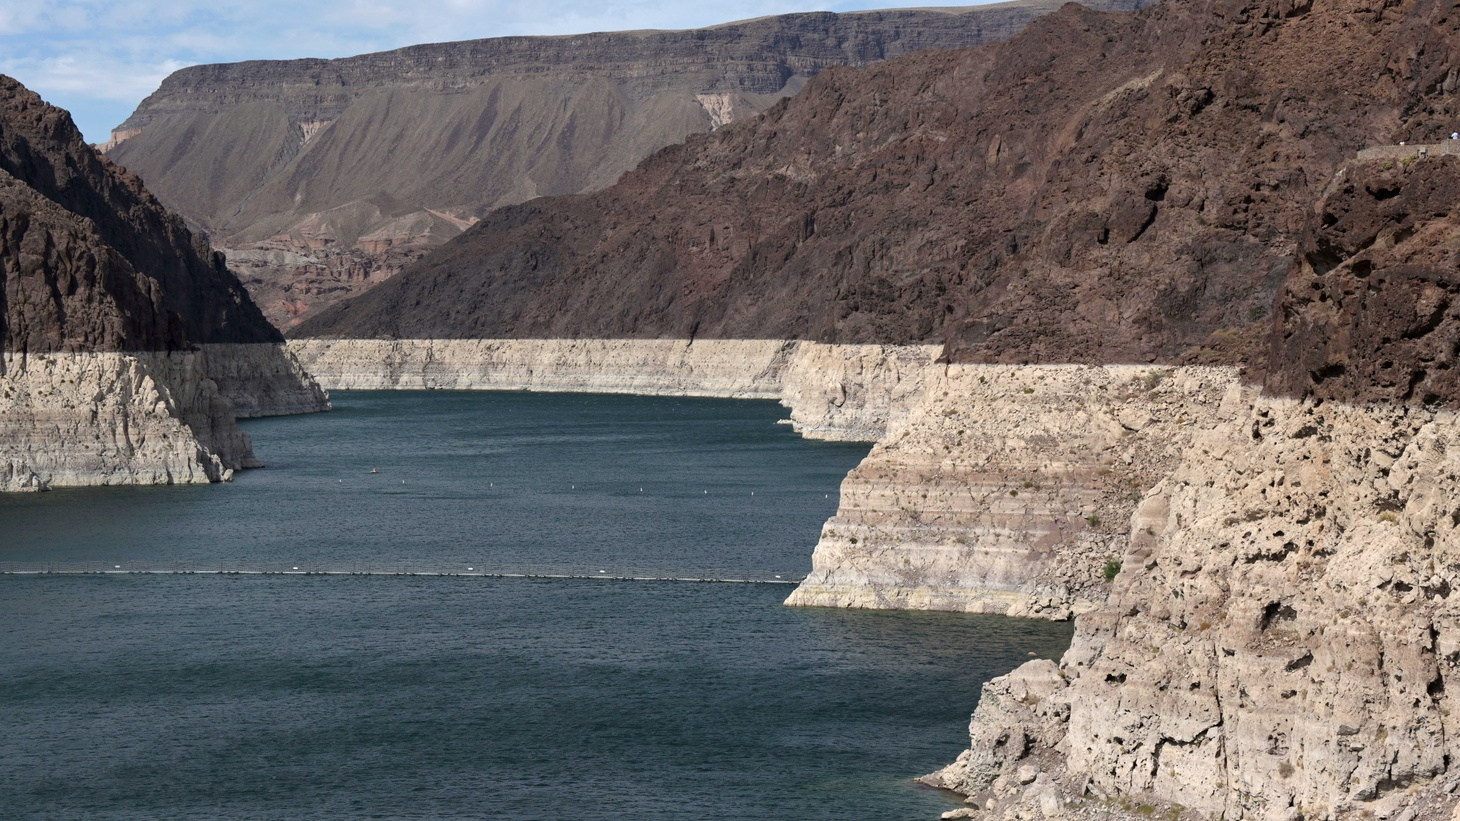 Low water levels due to drought are seen in the Hoover Dam reservoir of Lake Mead near Las Vegas, Nevada, U.S. June 9, 2021.